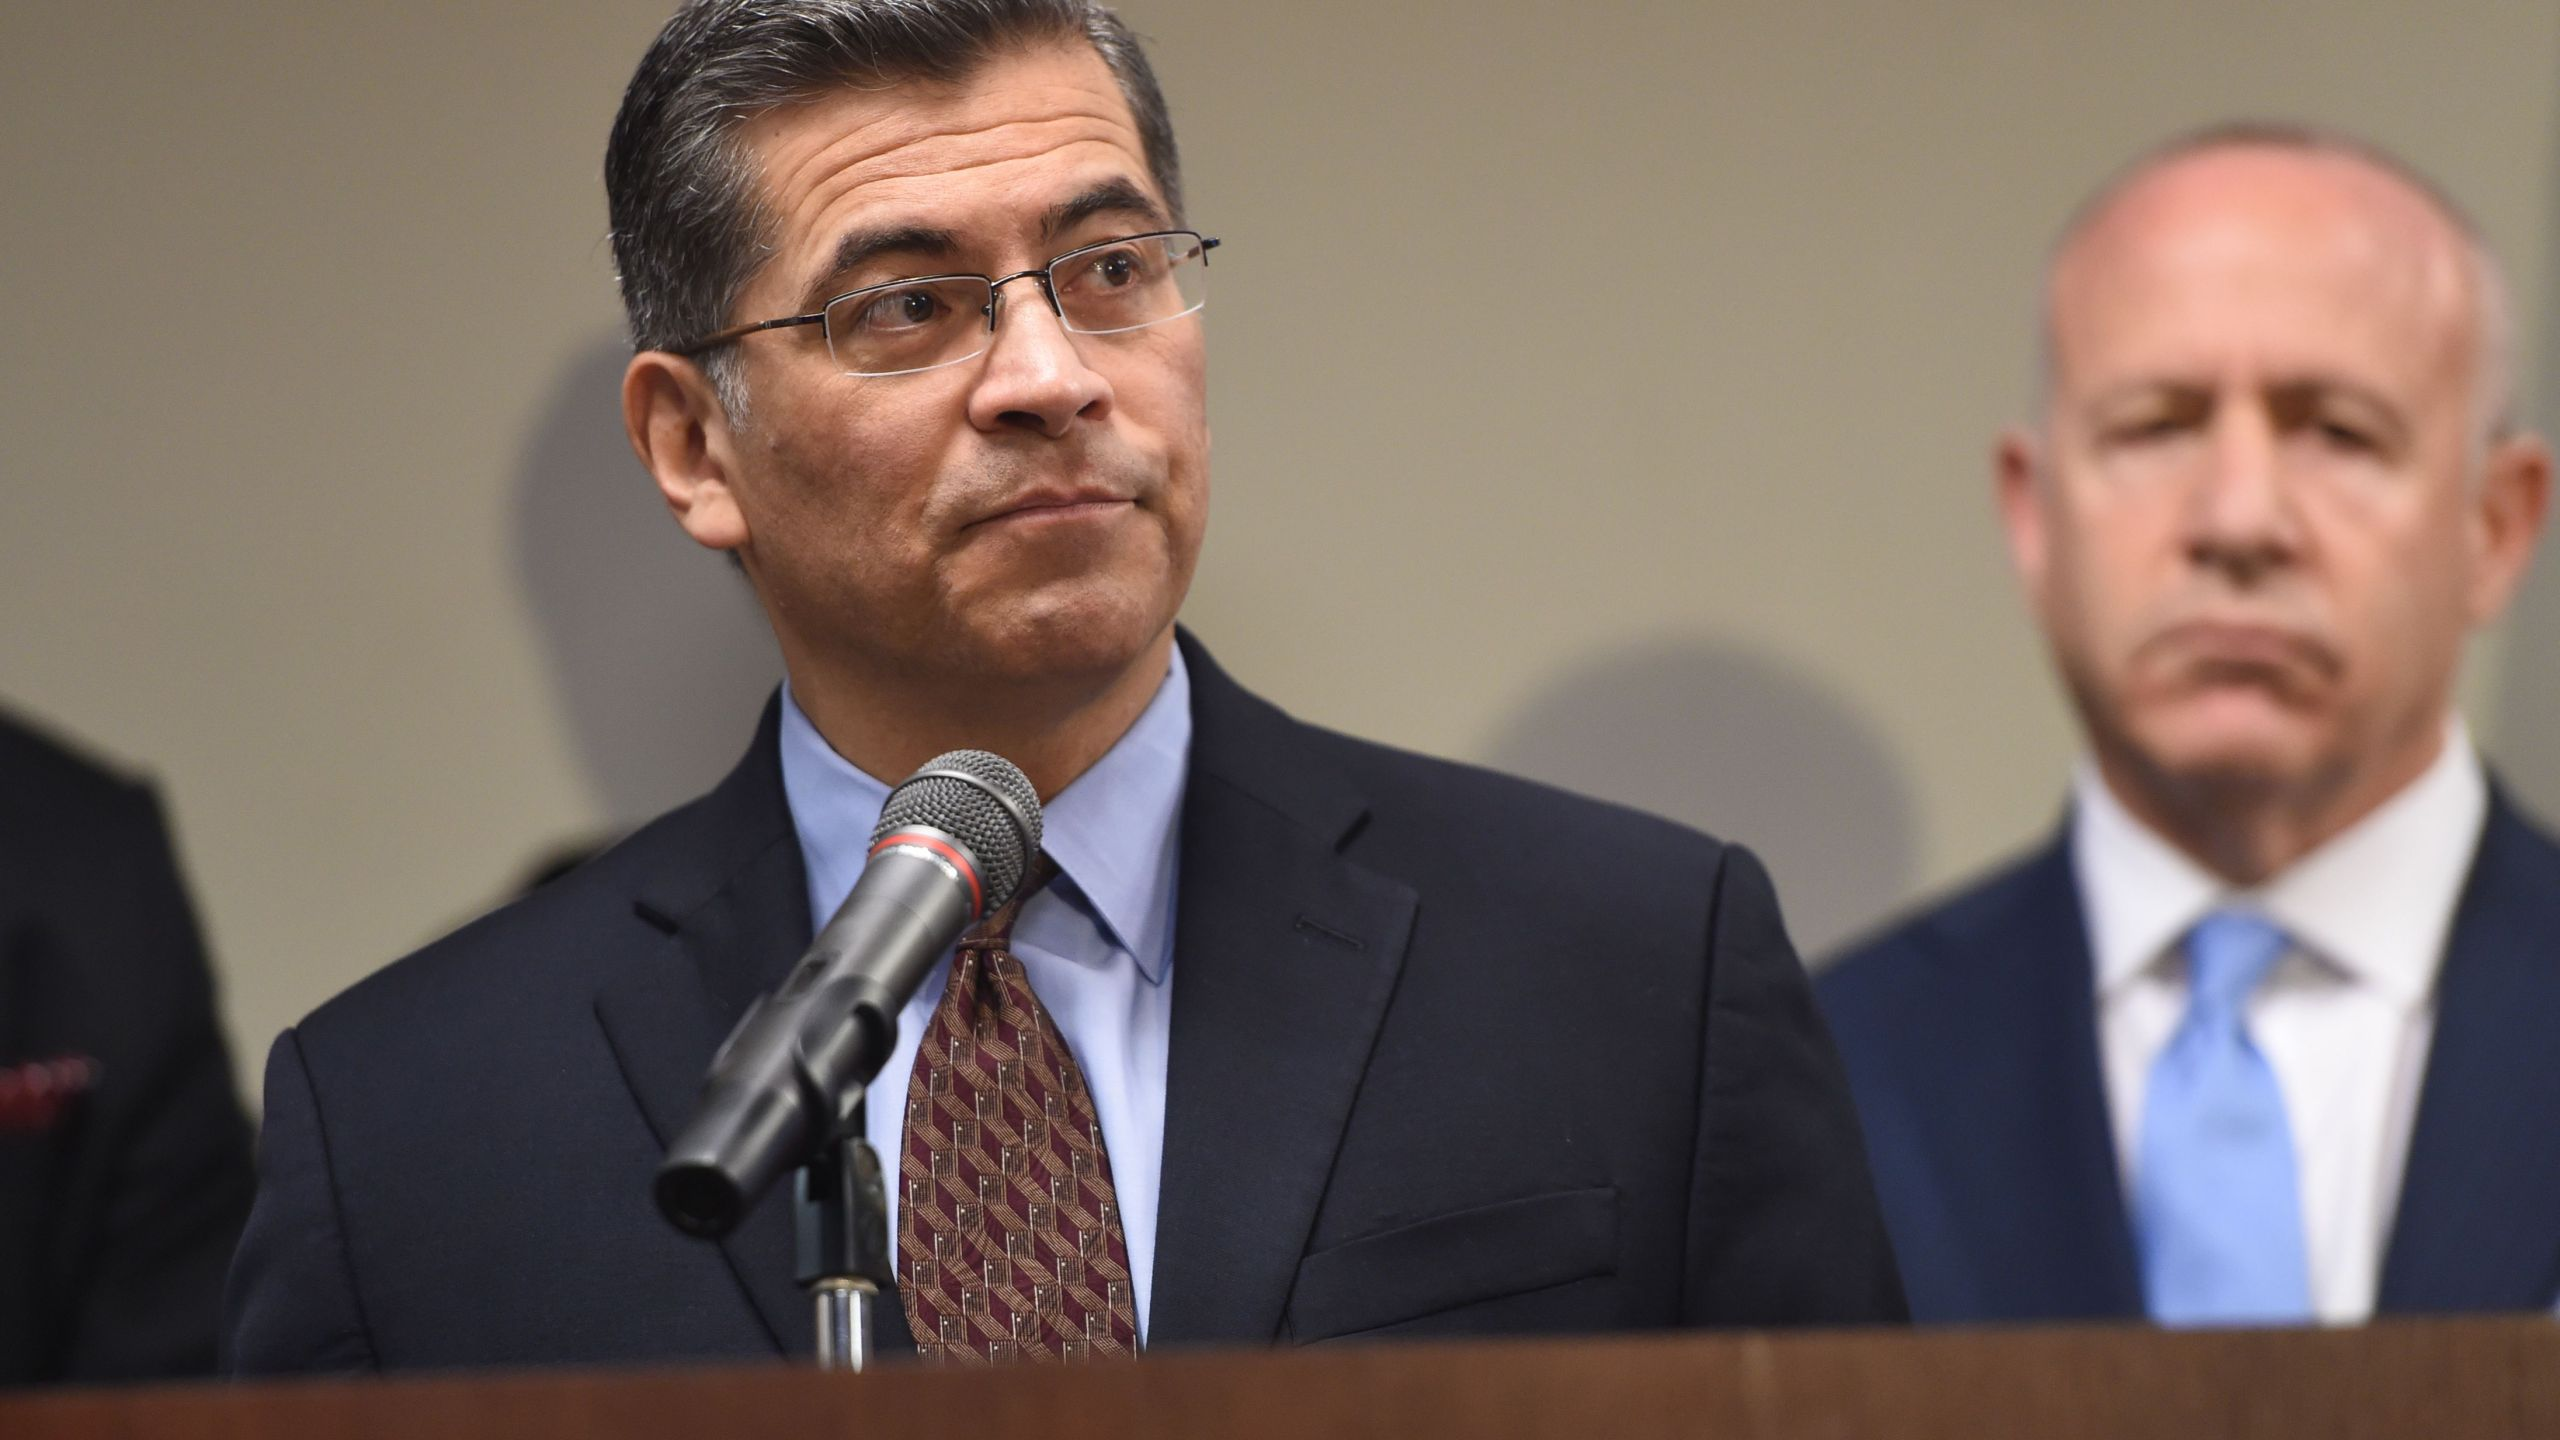 California Attorney General Xavier Becerra speaks during a news conference in Sacramento on March 27, 2018. (Credit:JOSH EDELSON/AFP/Getty Images)